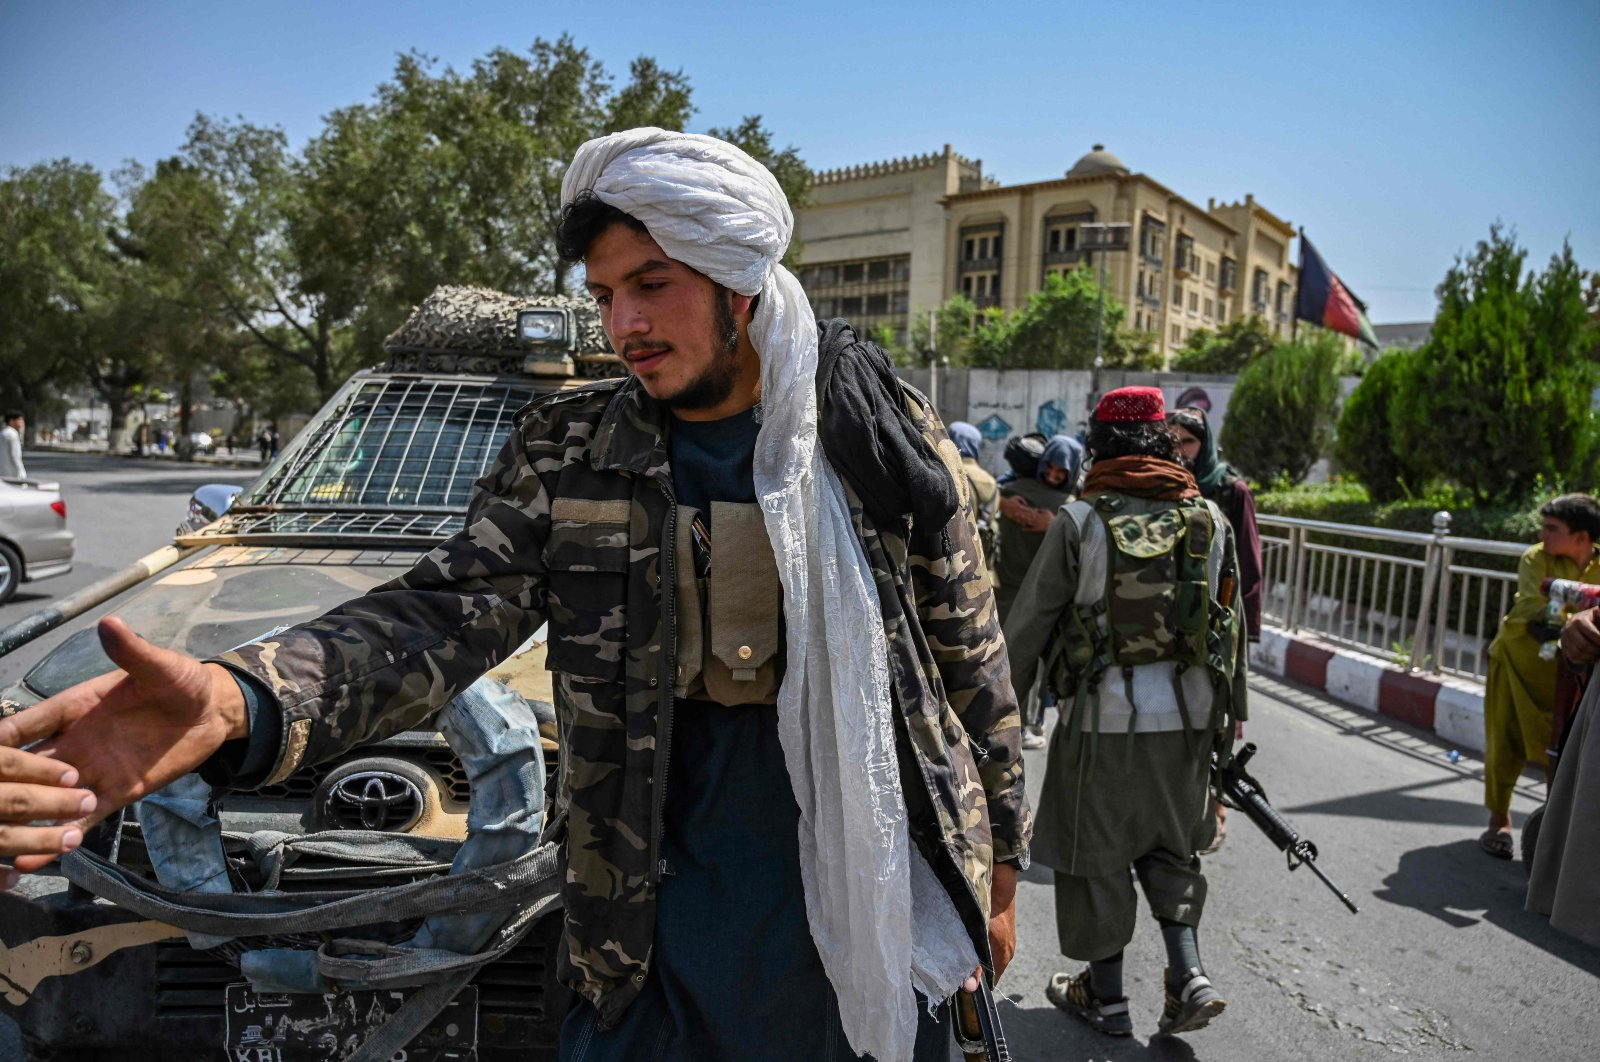 Taliban fighters stand guard along a street at Massoud Square in Kabul, Aug. 16, 2021. (AFP Photo)